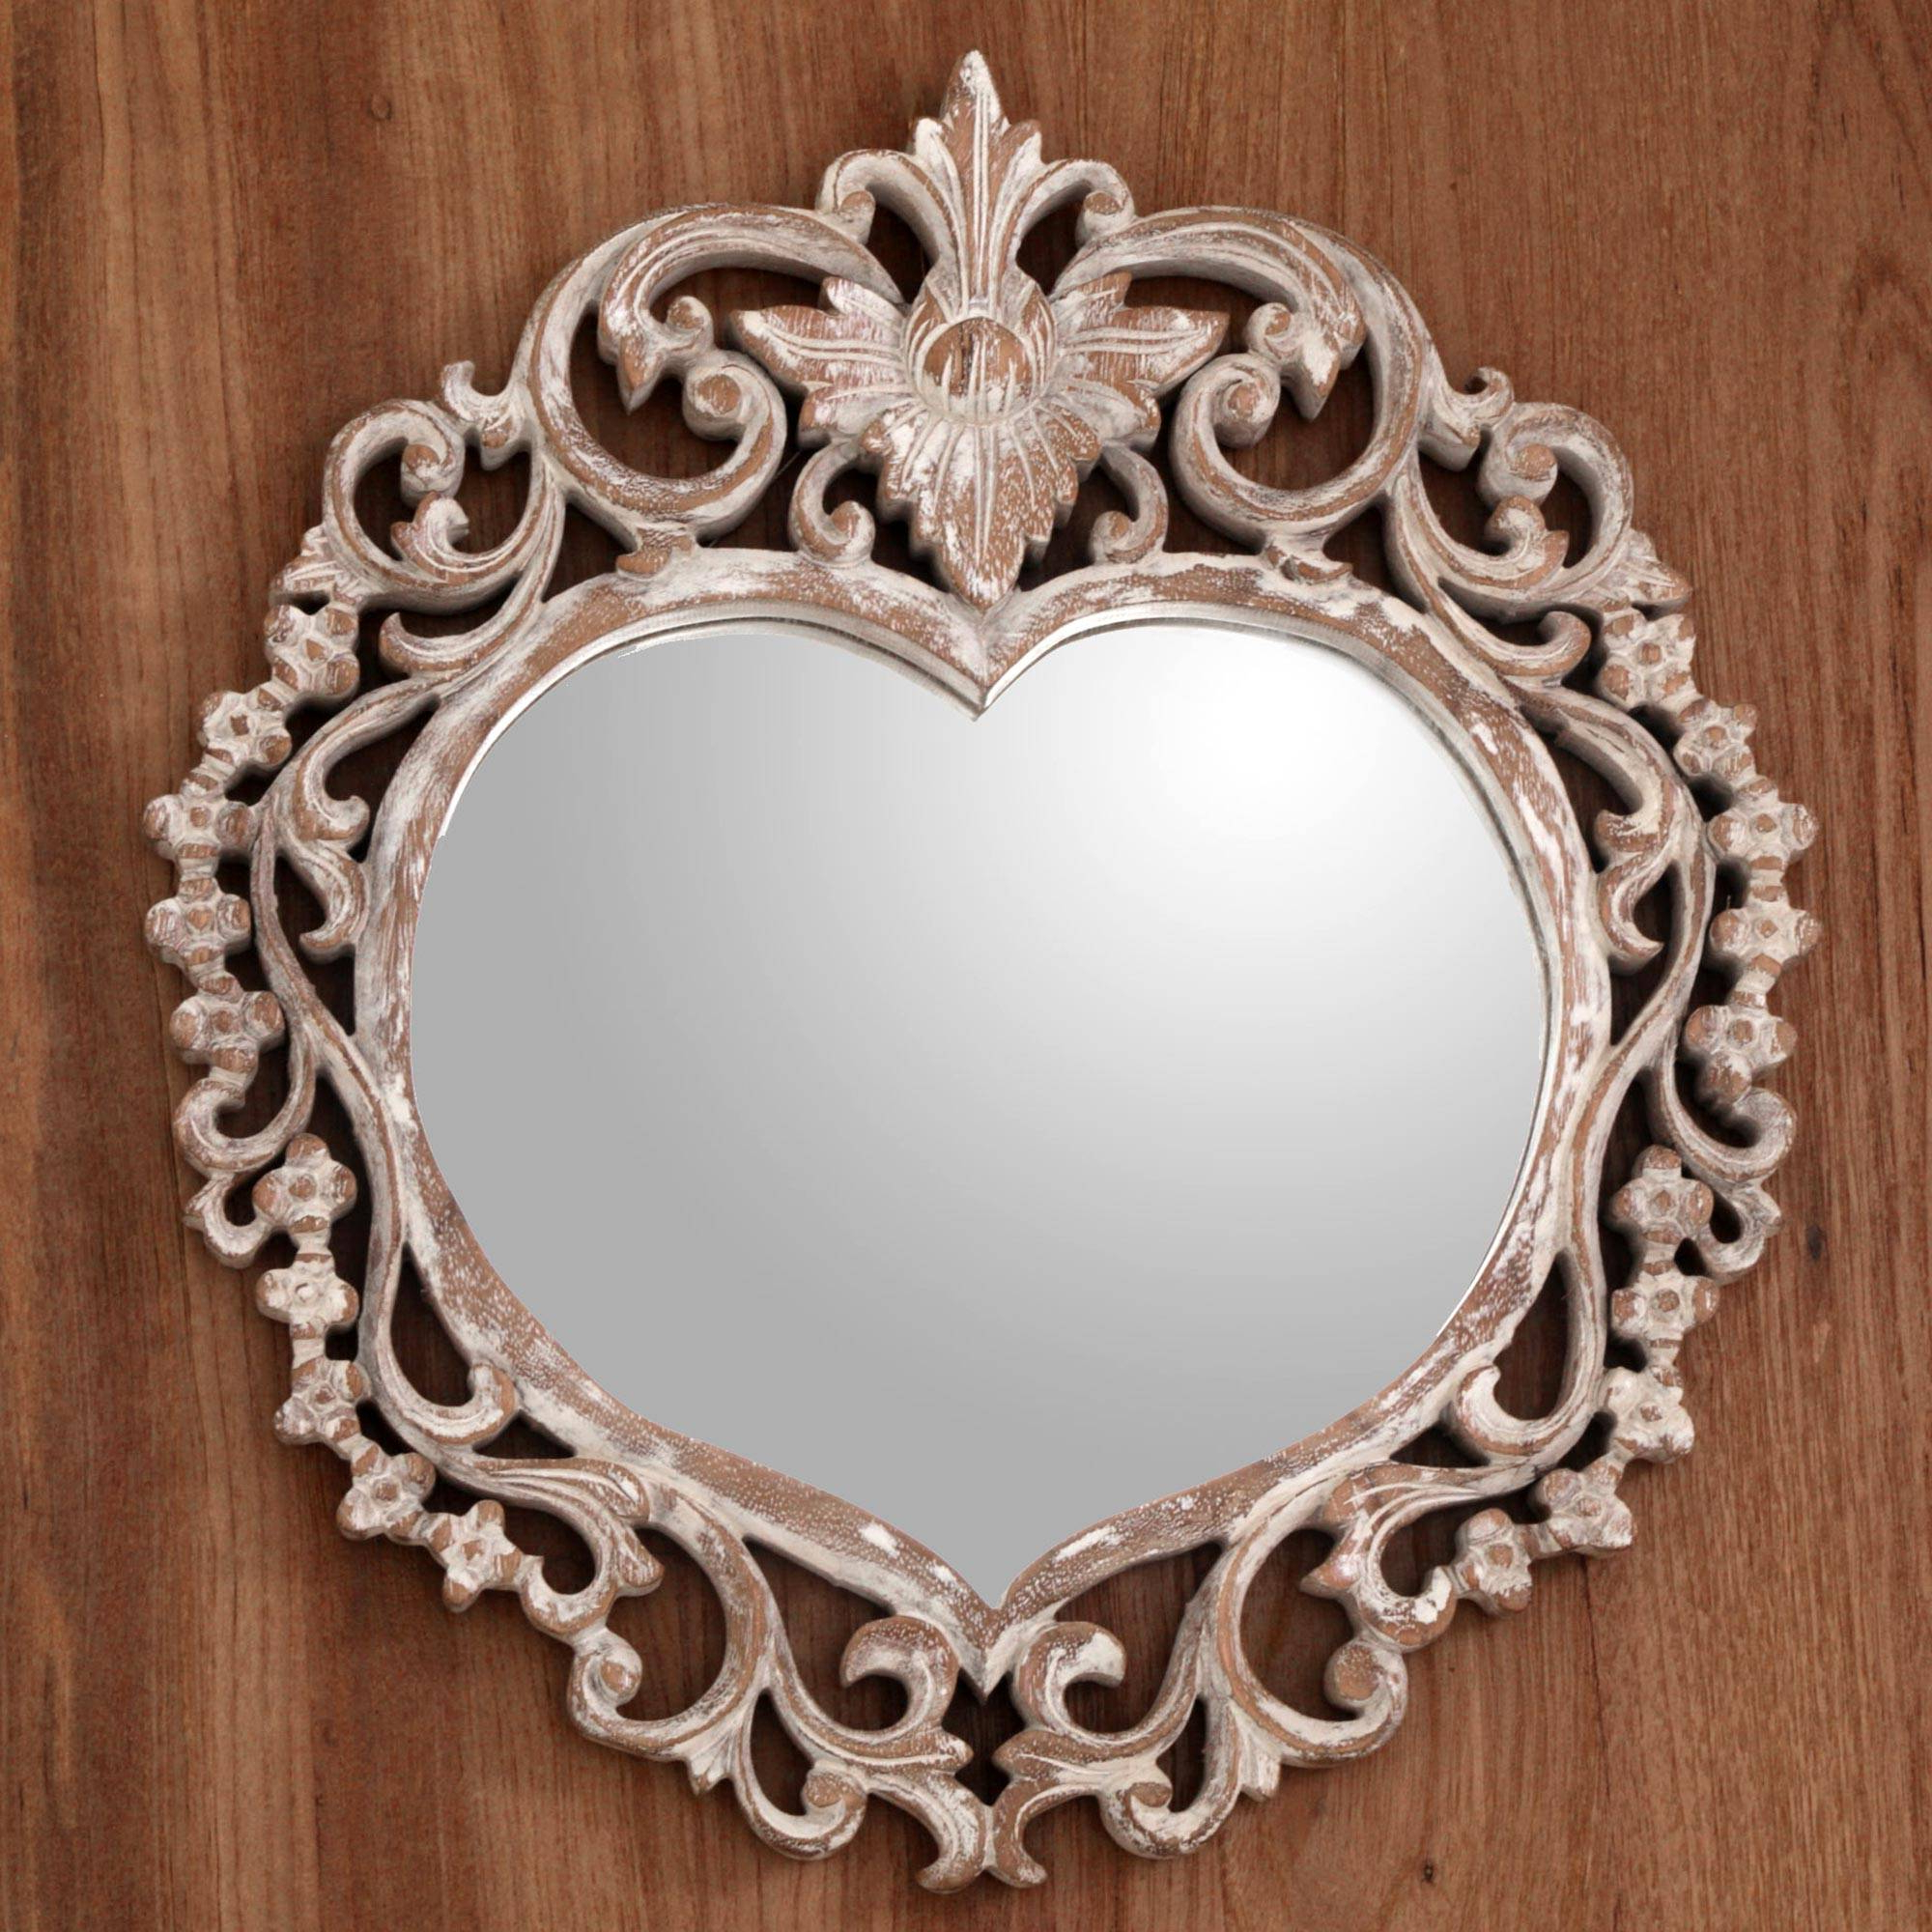 Fashionable Heart Shaped Wall Mirrors Pertaining To Hand Carved Wood Heart Shaped Wall Mirror From Indonesia, 'wild Heart' (View 7 of 20)